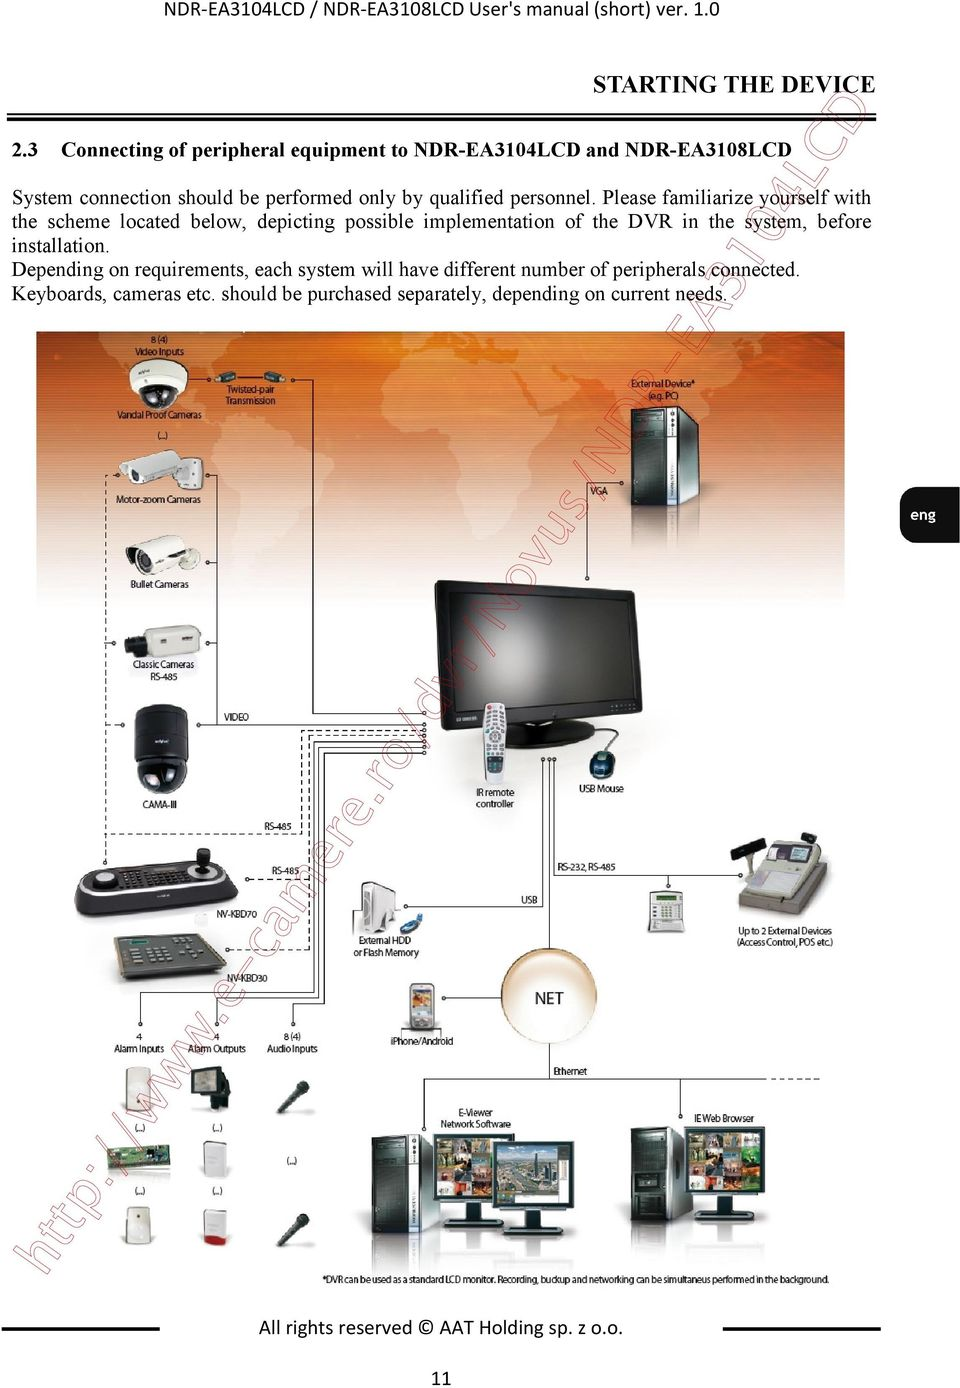 Please familiarize yourself with the scheme located below, depicting possible implementation of the DVR in the system, before installation.